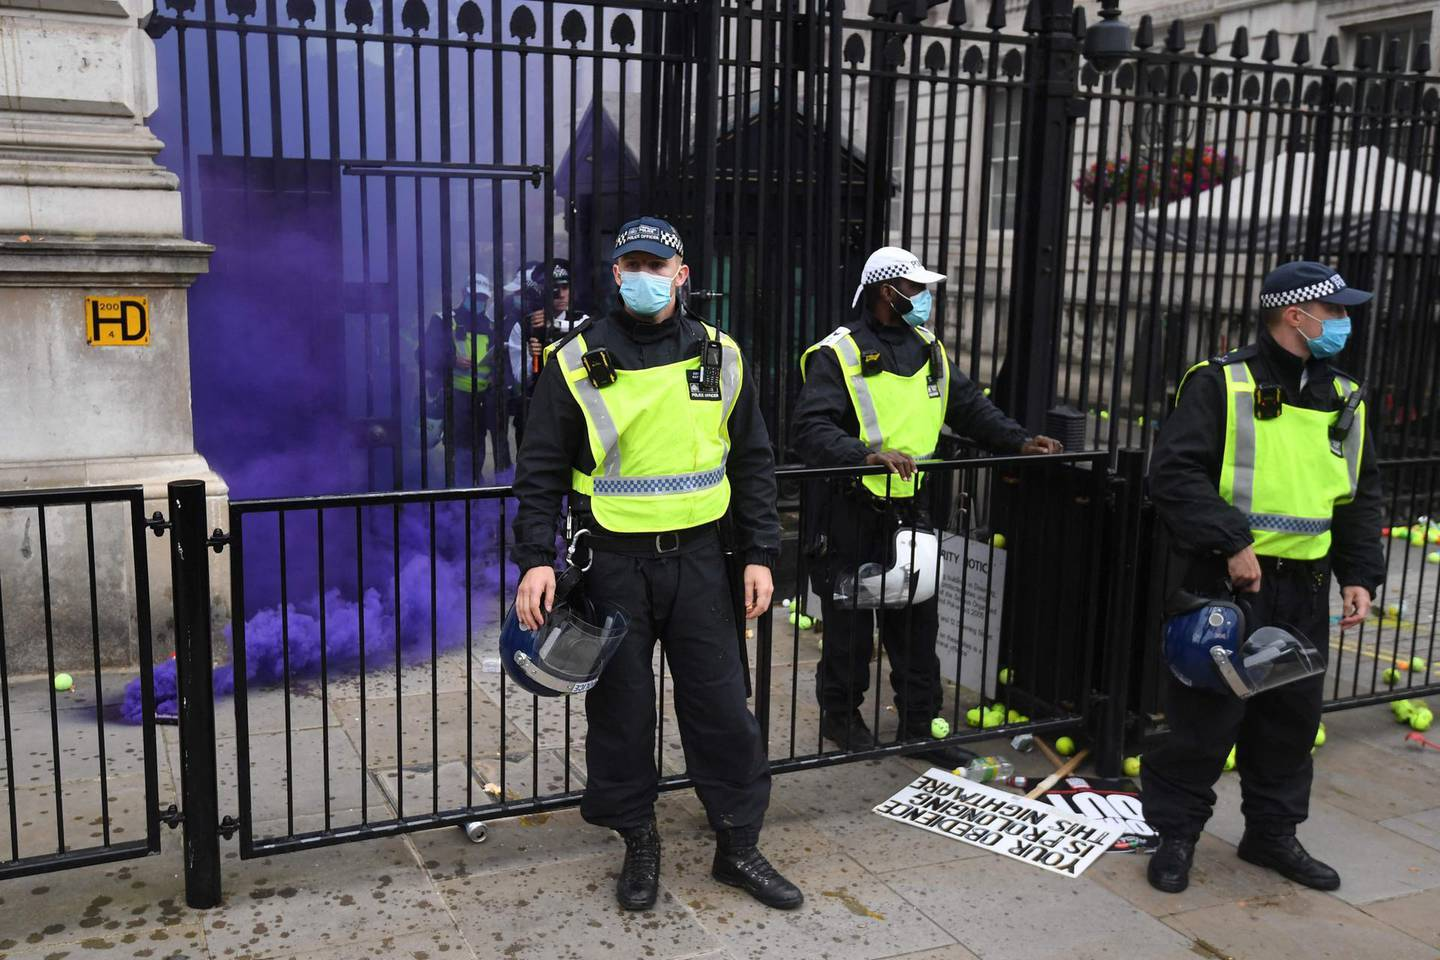 A smoke canister goes off during an anti-Vaccine and anti-lockdown demonstration outside Downing street in central London, on June 26, 2021.  / AFP / DANIEL LEAL-OLIVAS